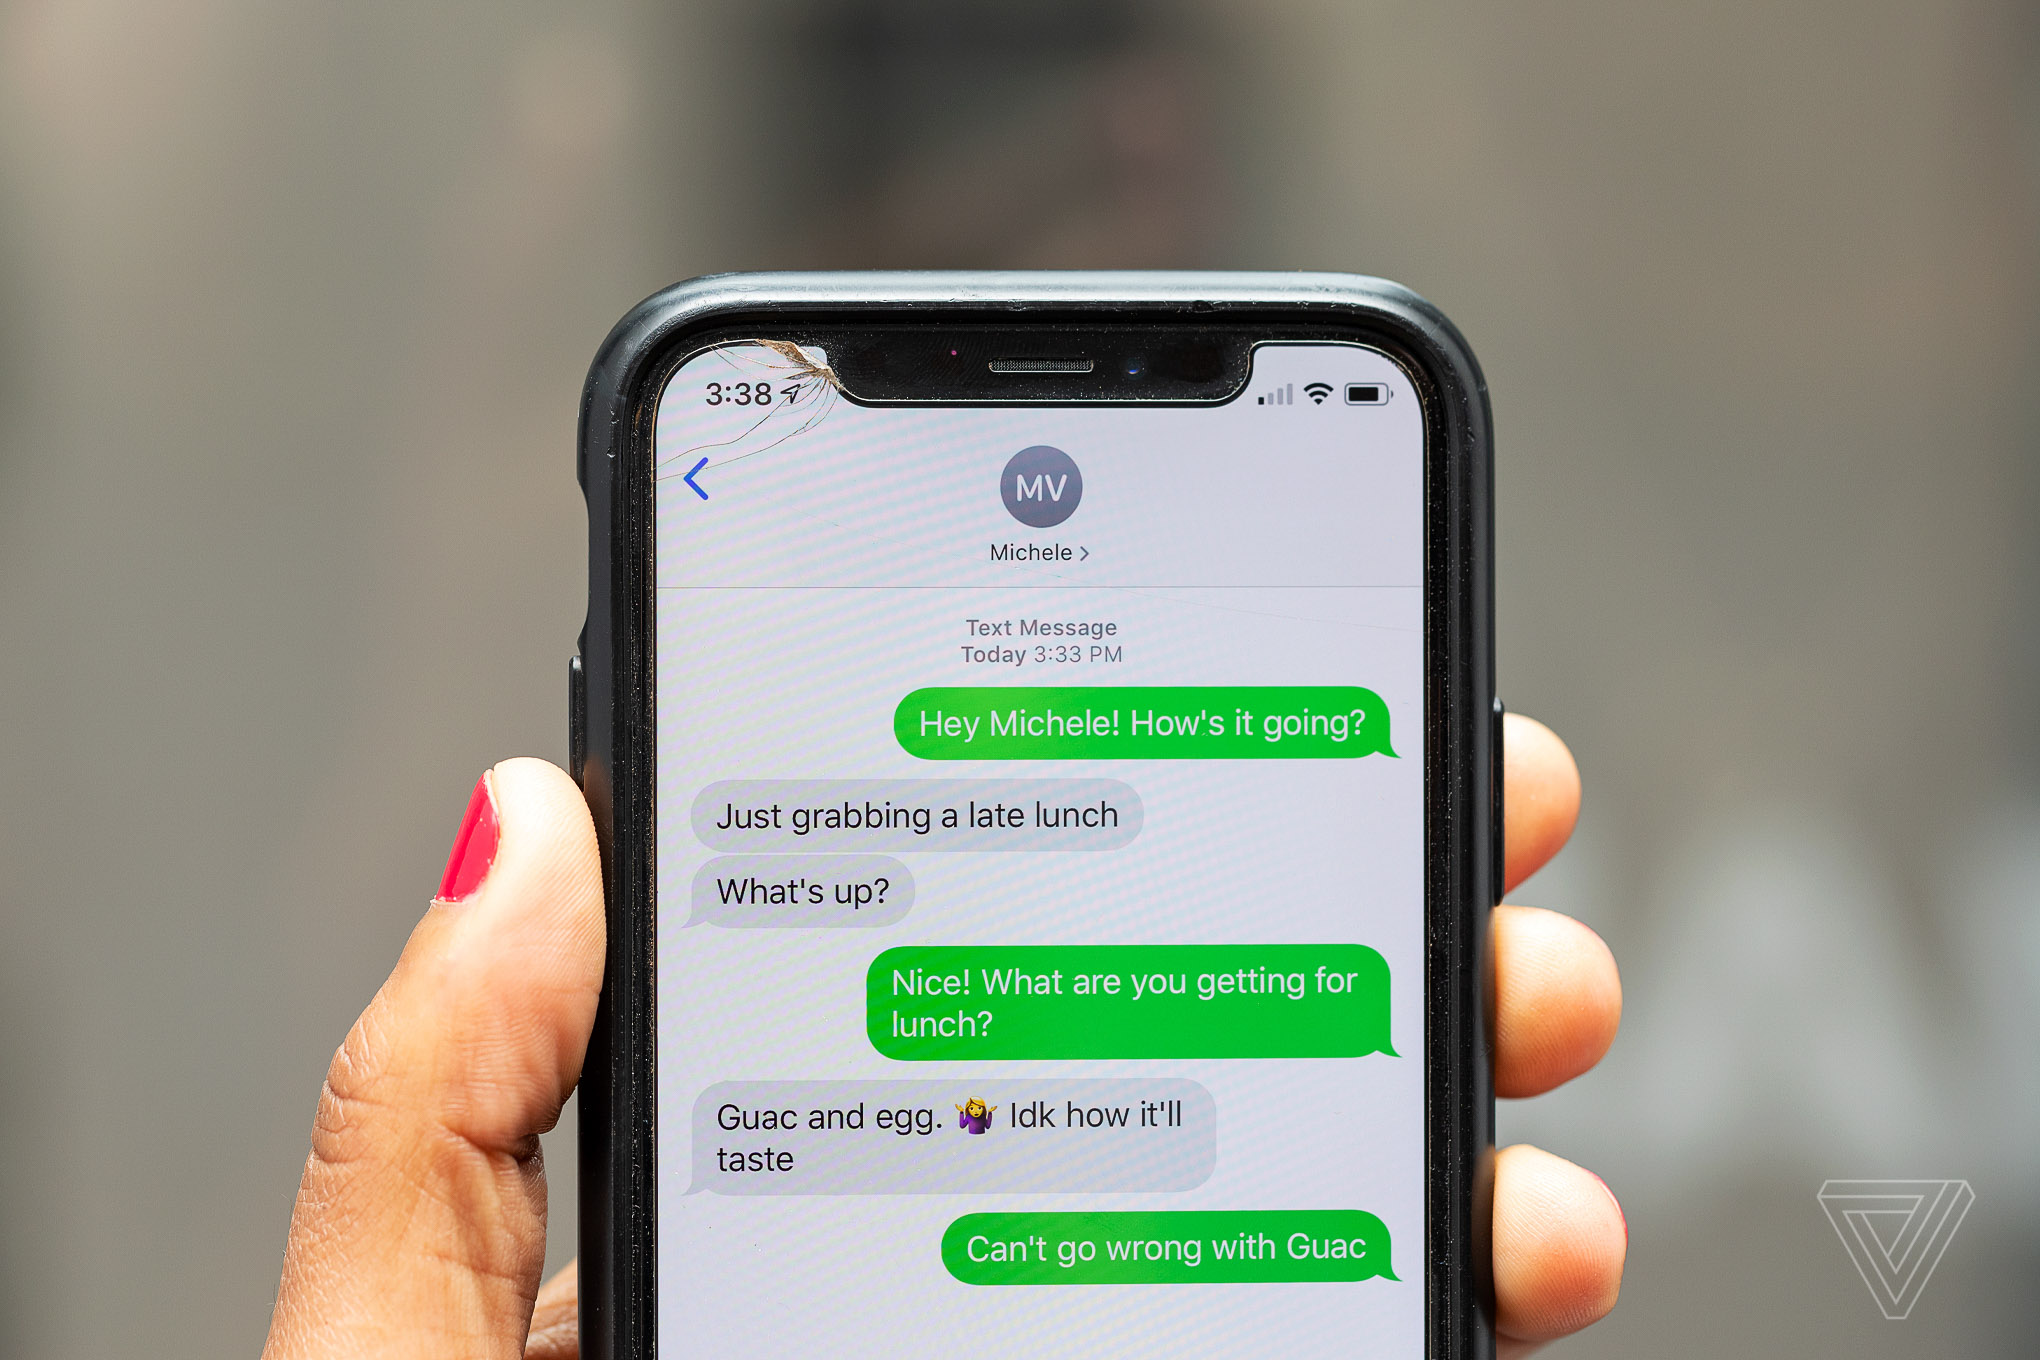 Why Apple gives Android users a green bubble in iMessage